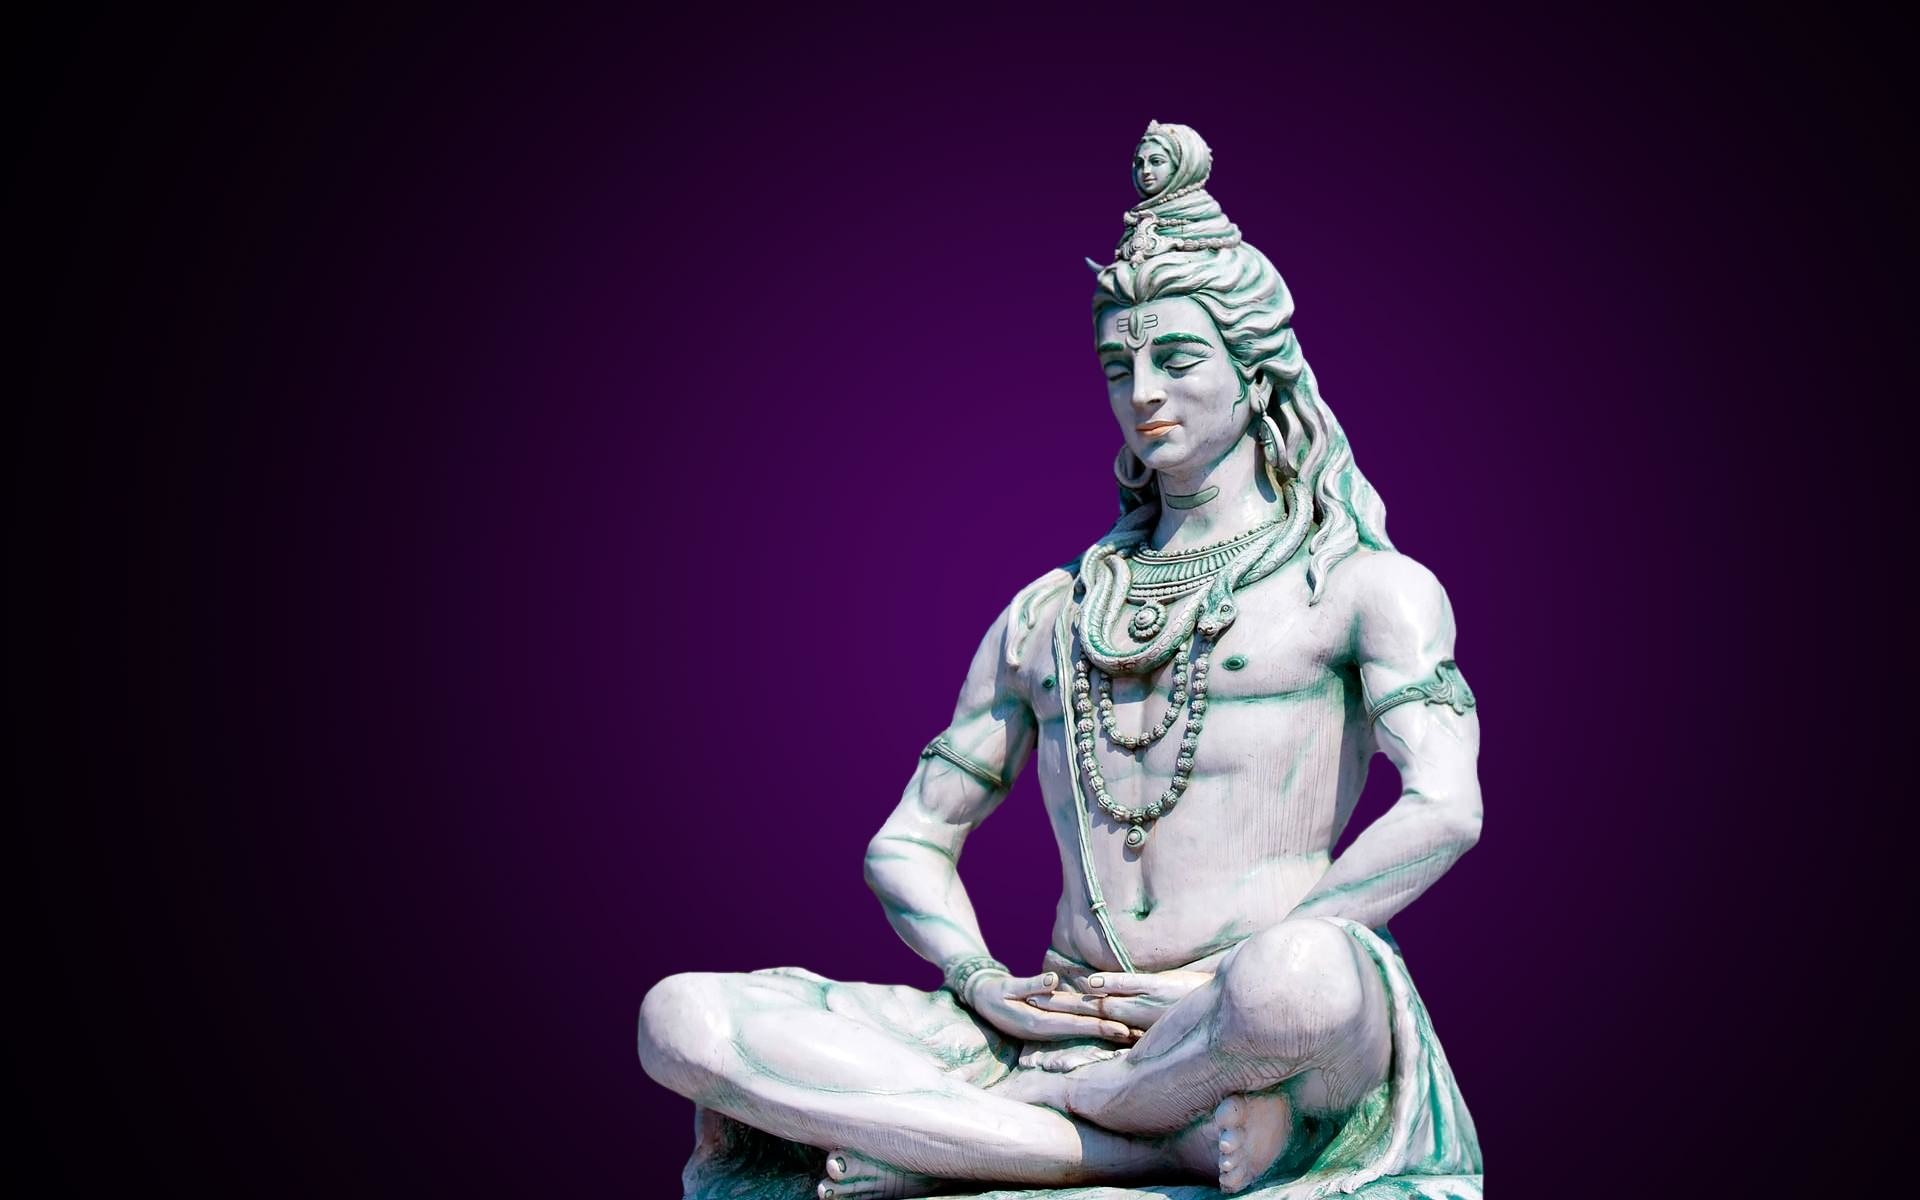 lord shiva wallpapers high resolution free download images (22)